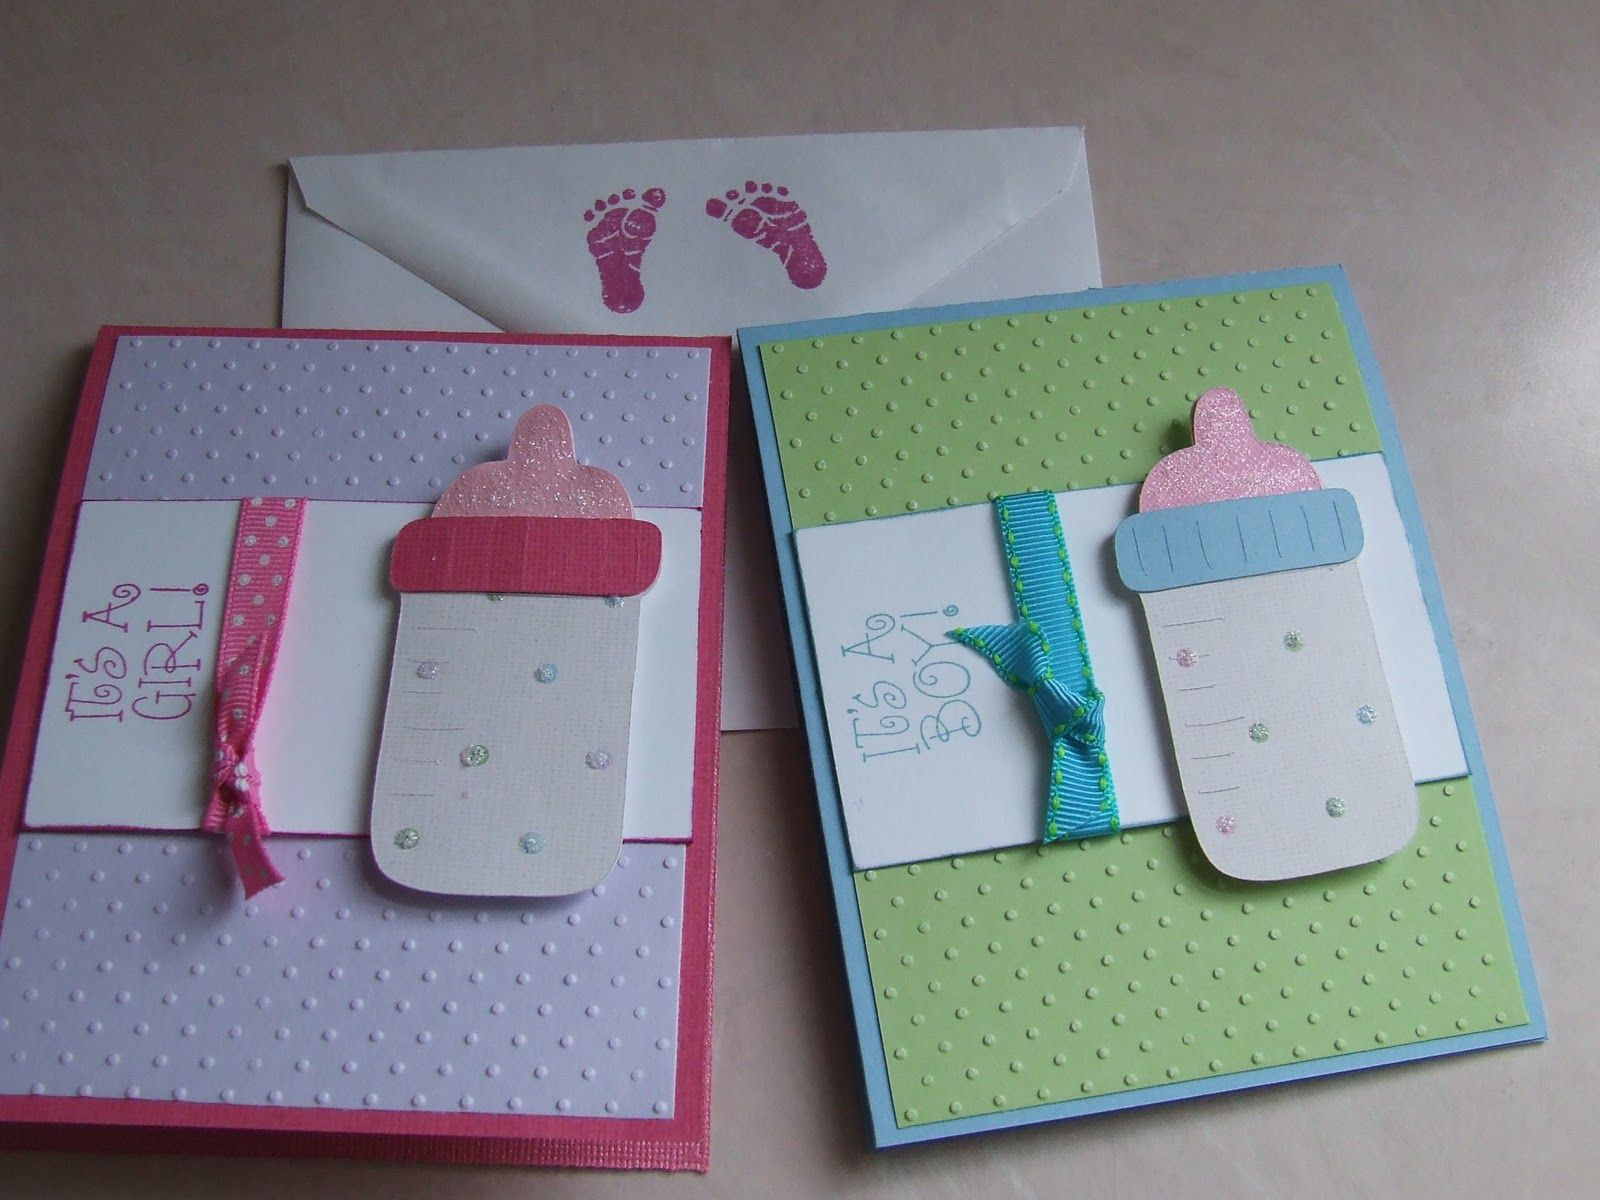 Delightful Card Making Ideas With Cricut Part - 5: Baby Card Ideas Cricut - Google Search